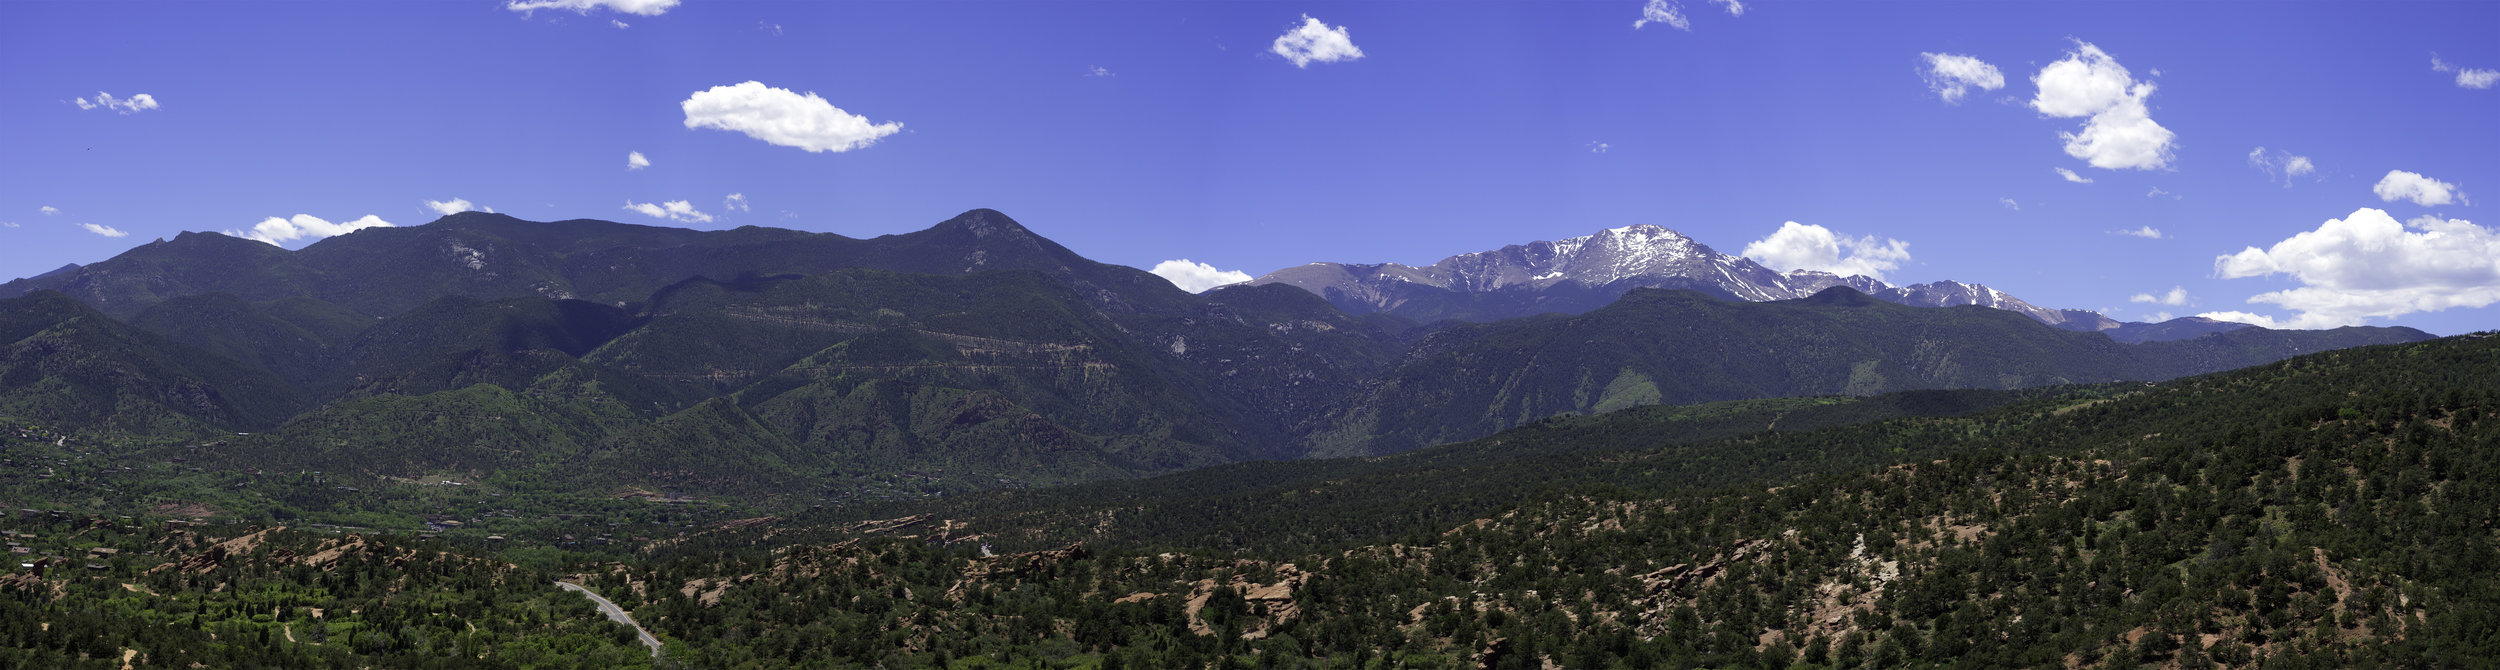 Colorado panorama.jpg